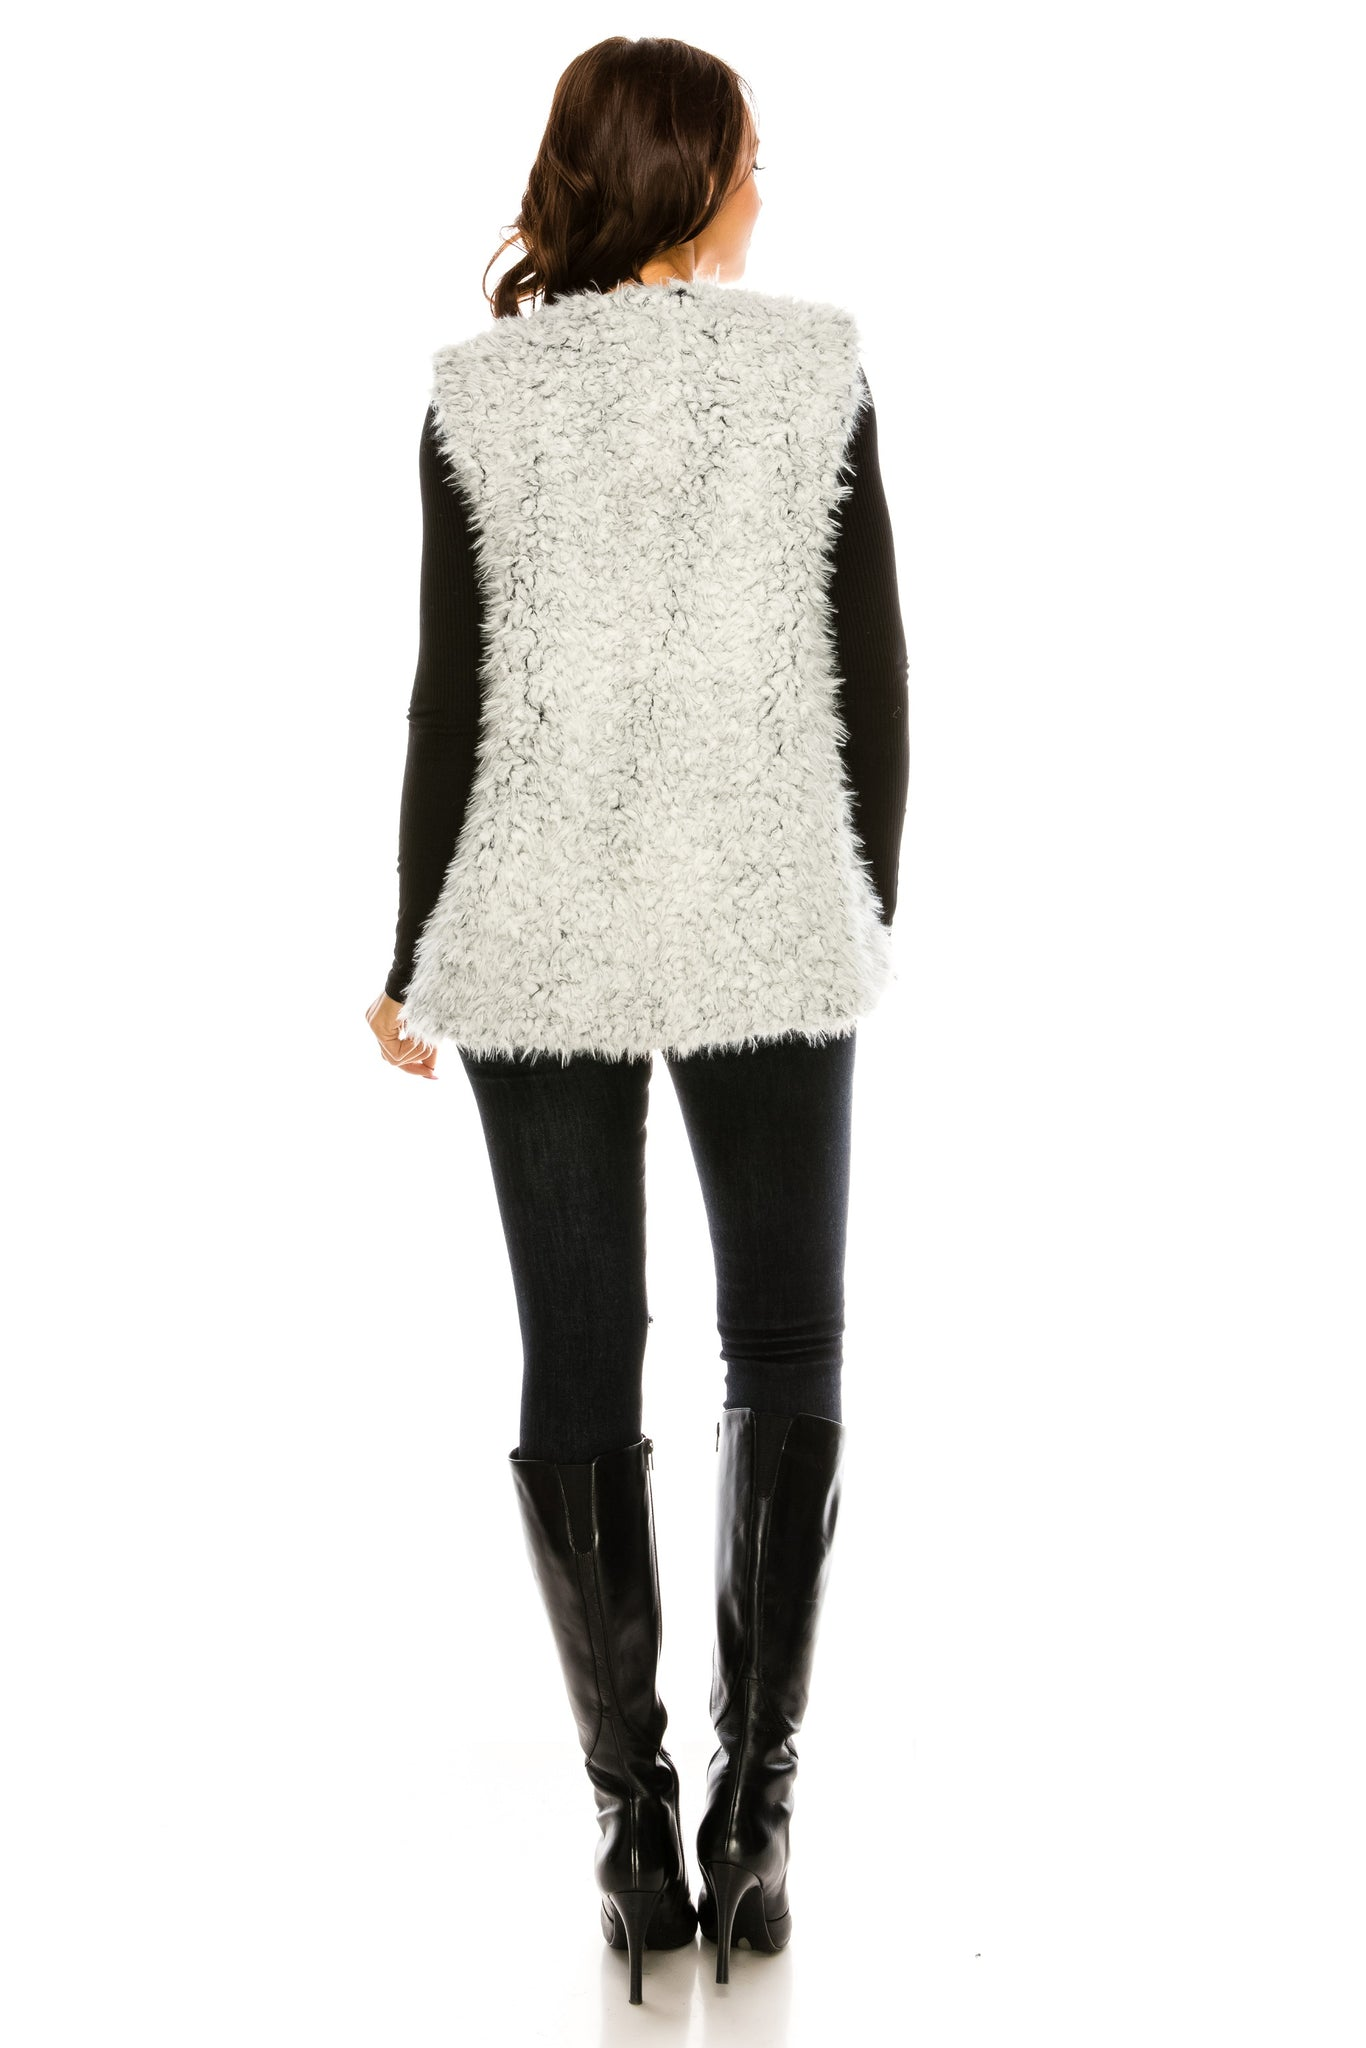 PC-102GY Two tone faux fur vest